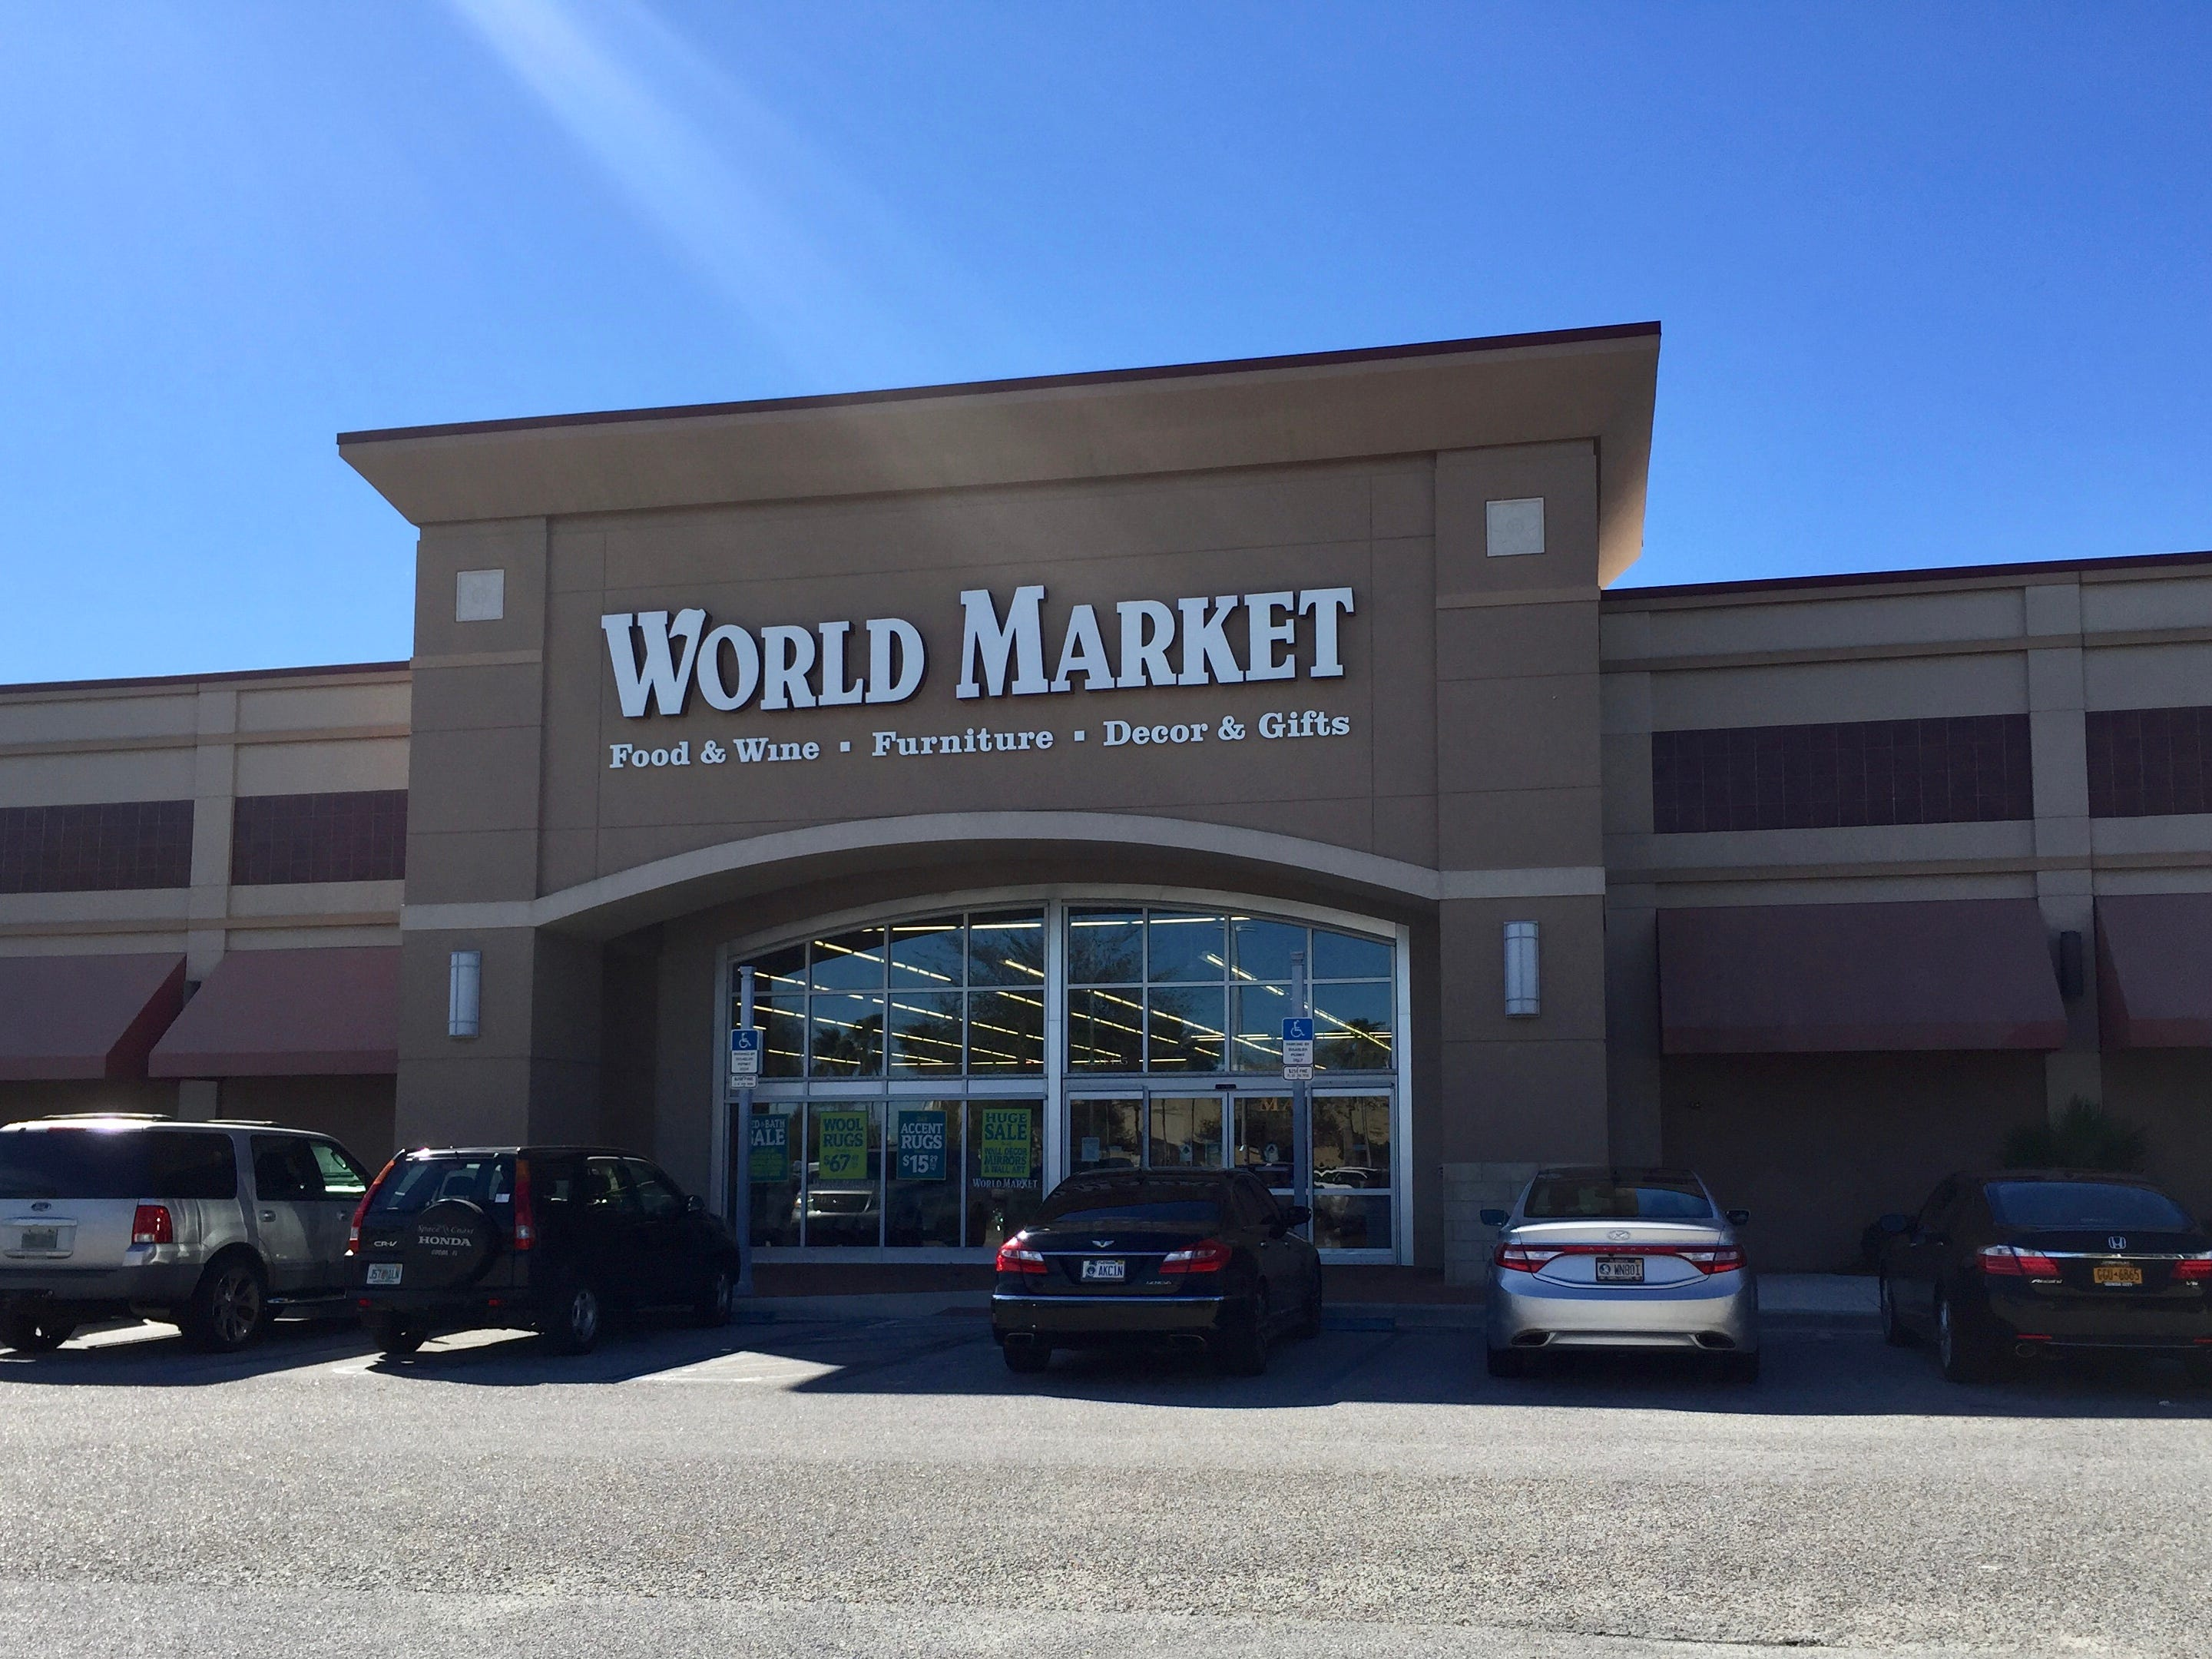 World Market will be closed Thanksgiving and will have giveaways to early shoppers on Black Friday through Nov. 25.